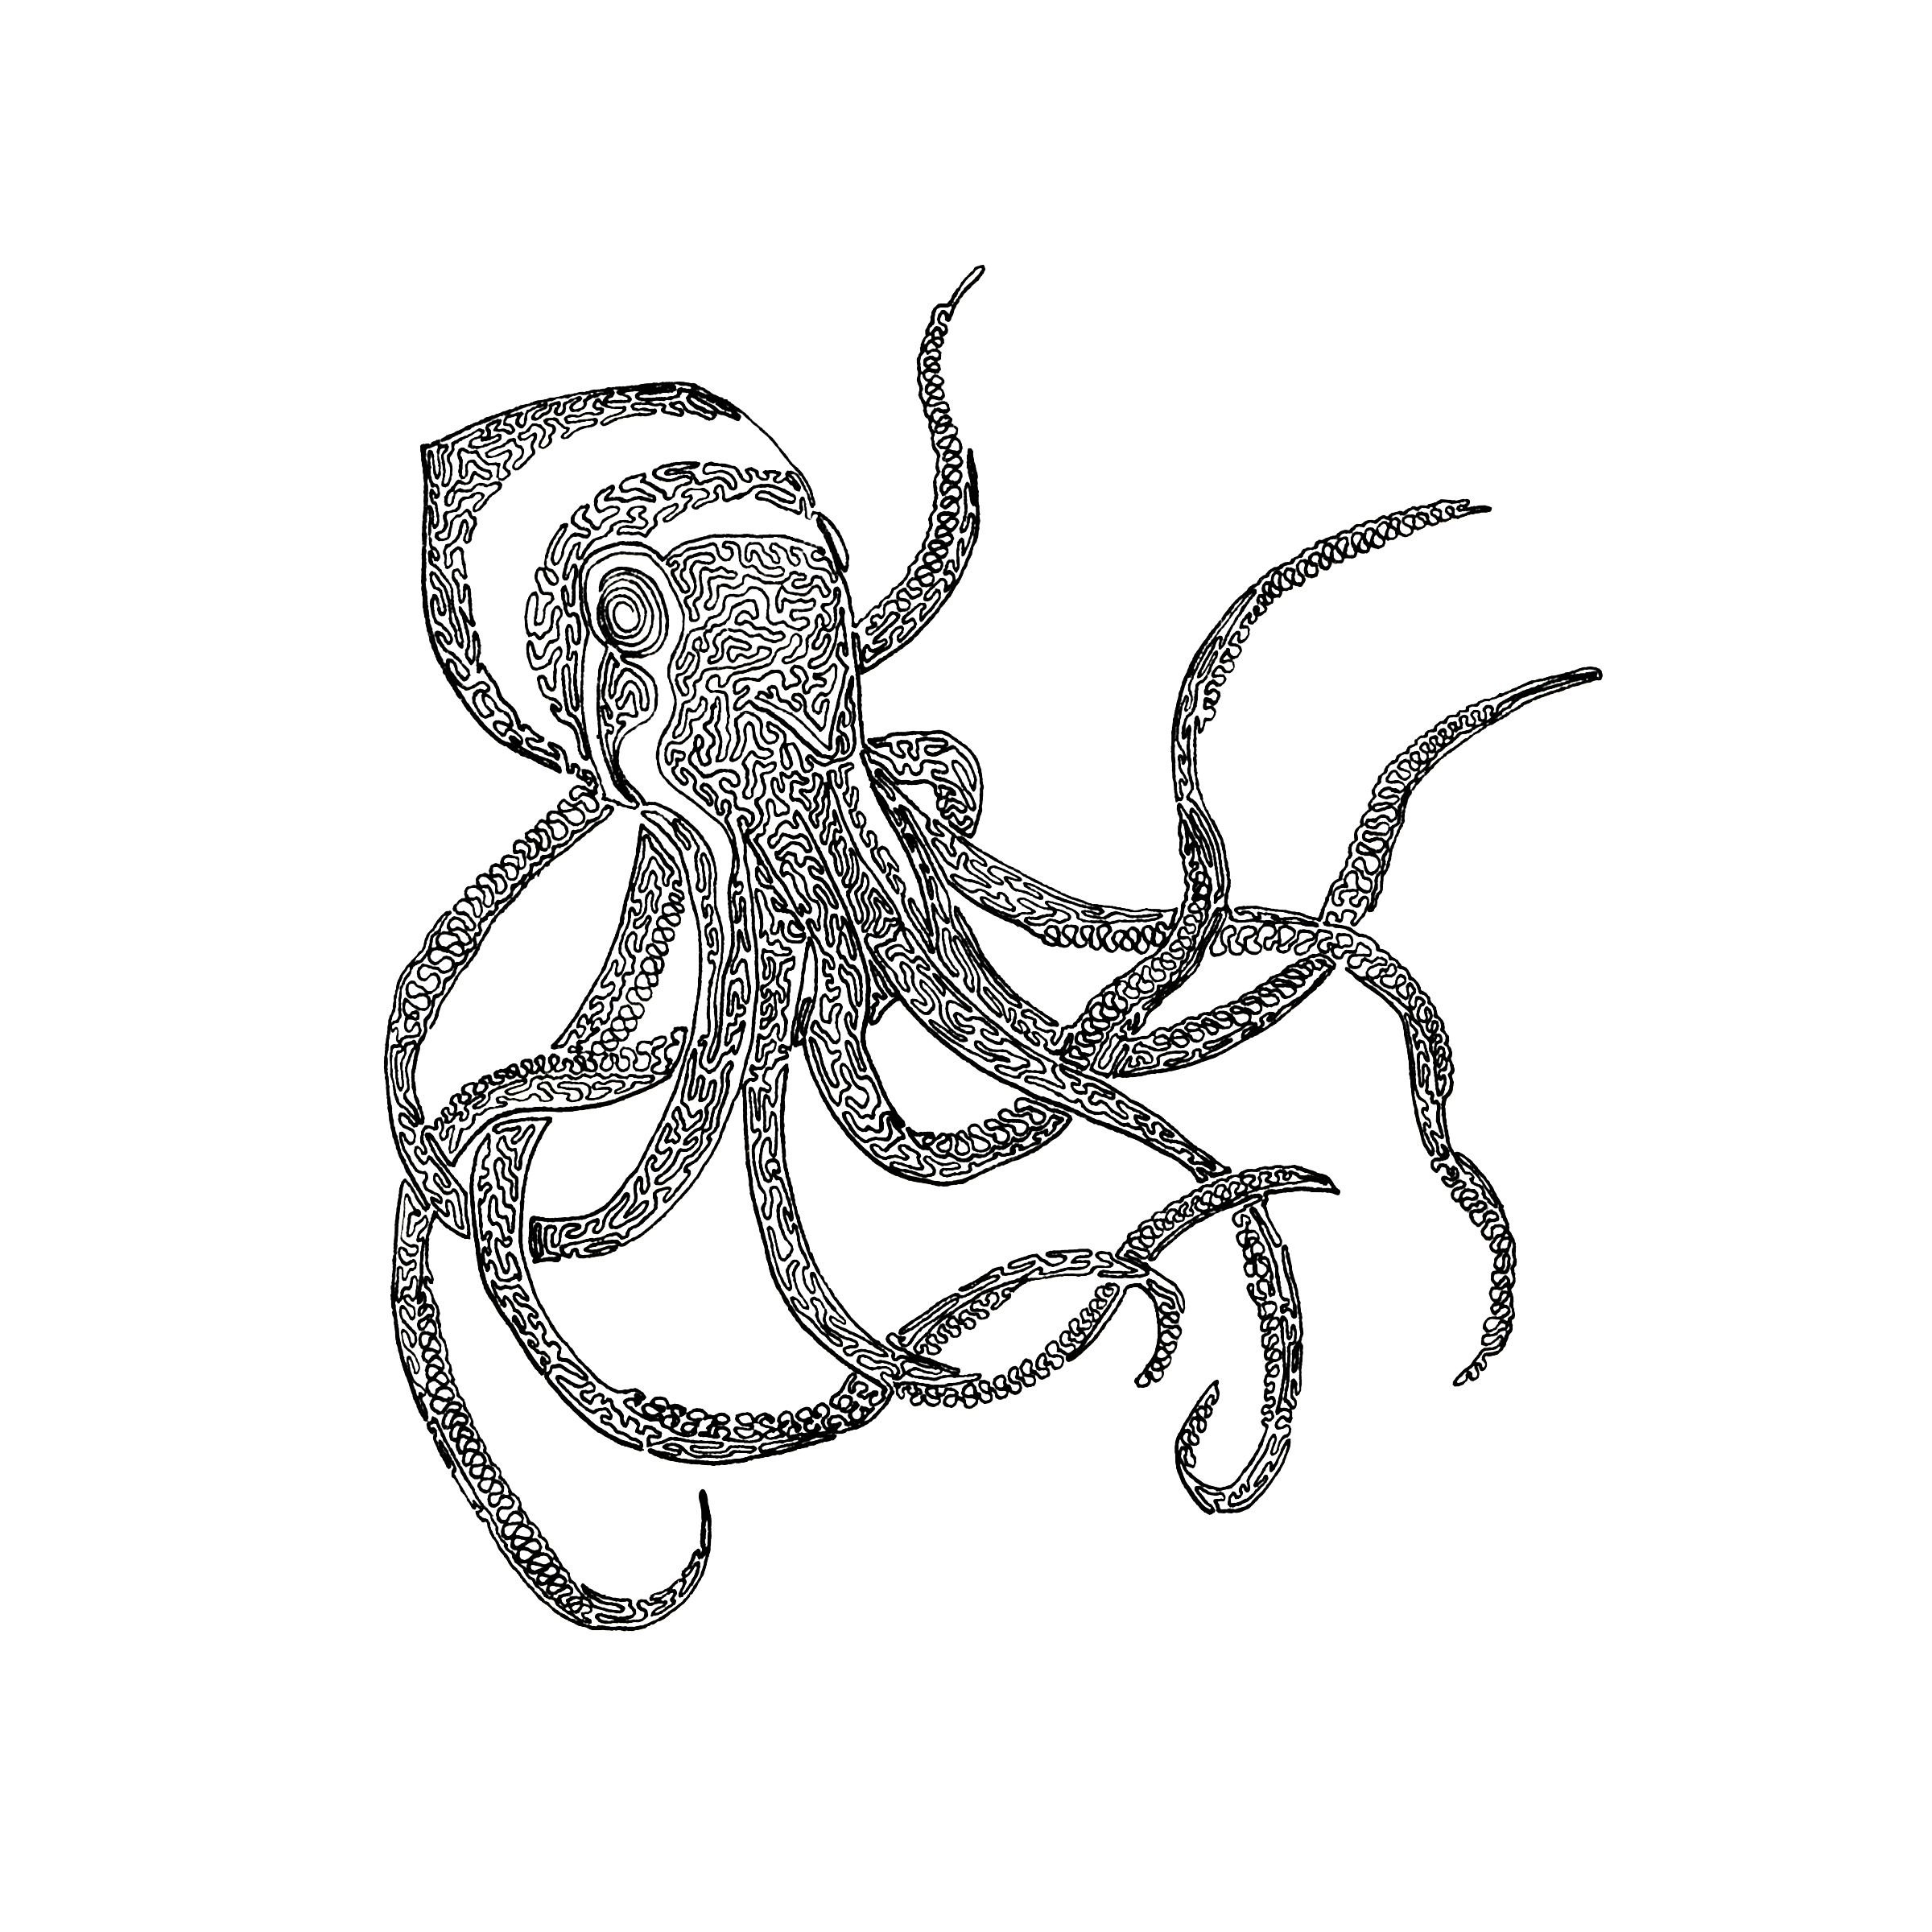 2400x2400 Octopus, Drawn With One Line. 8x10 With Micron 01.